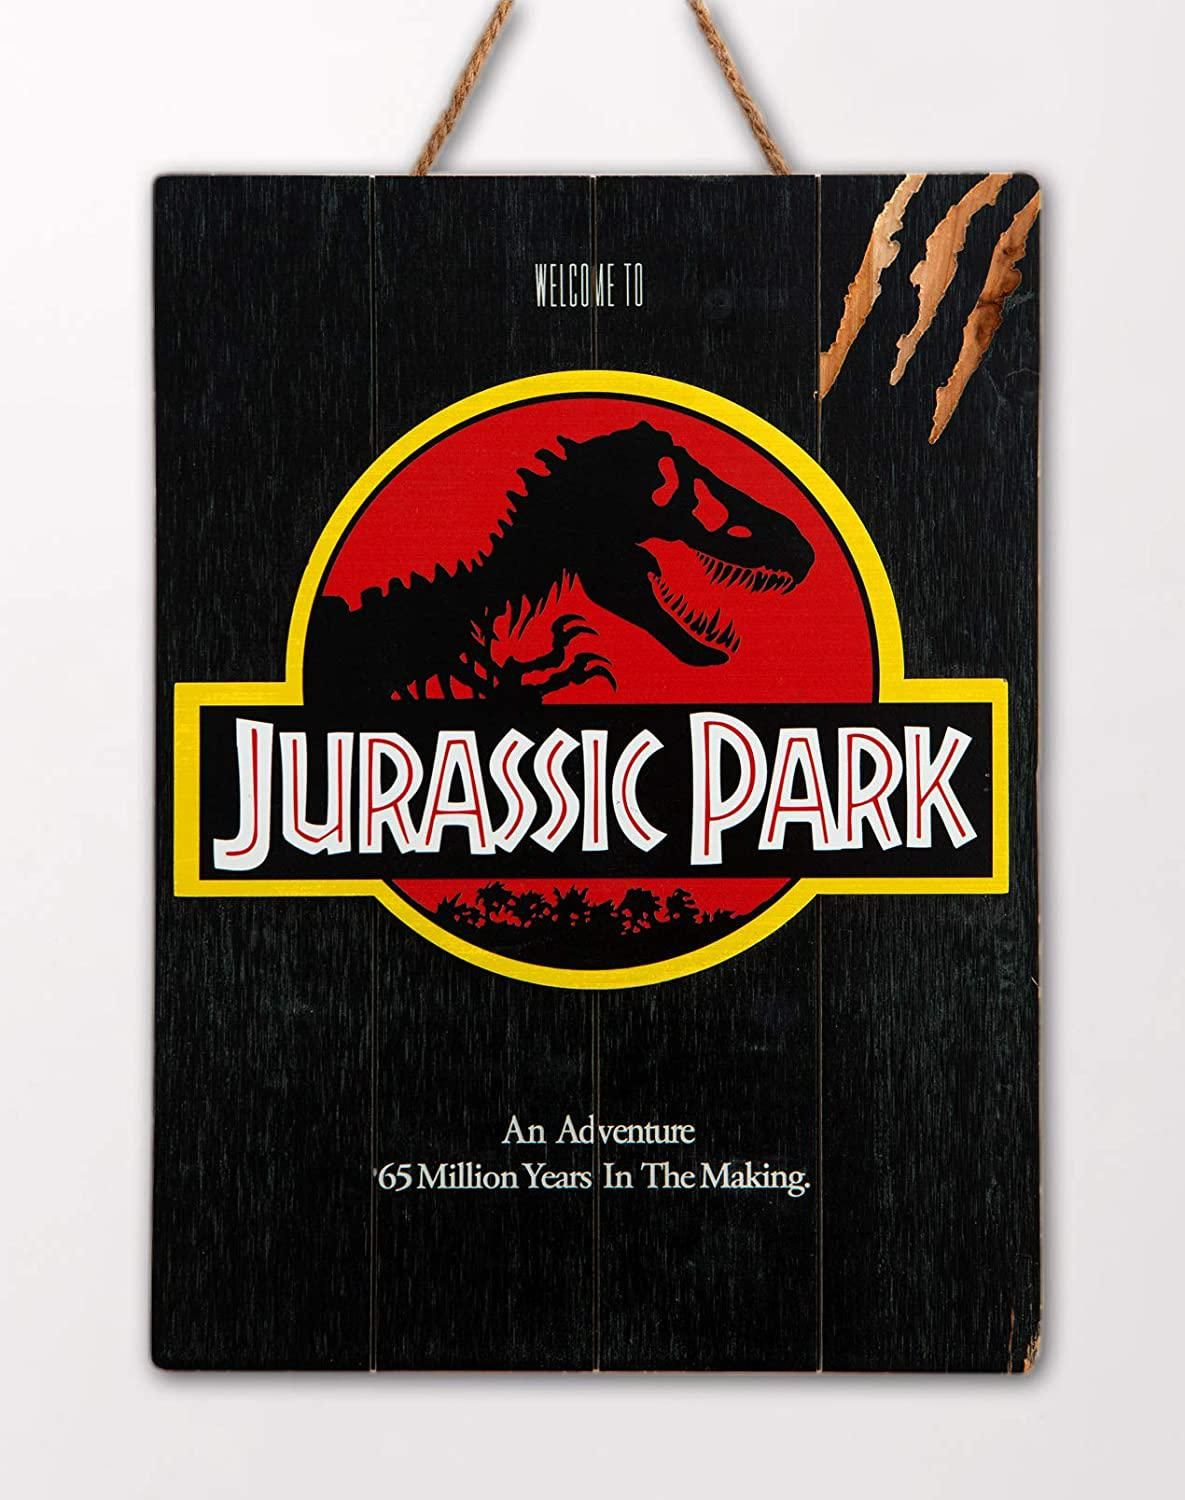 Jurrassic Park Welcome To Jurrassic Park WoodArts 3D Print